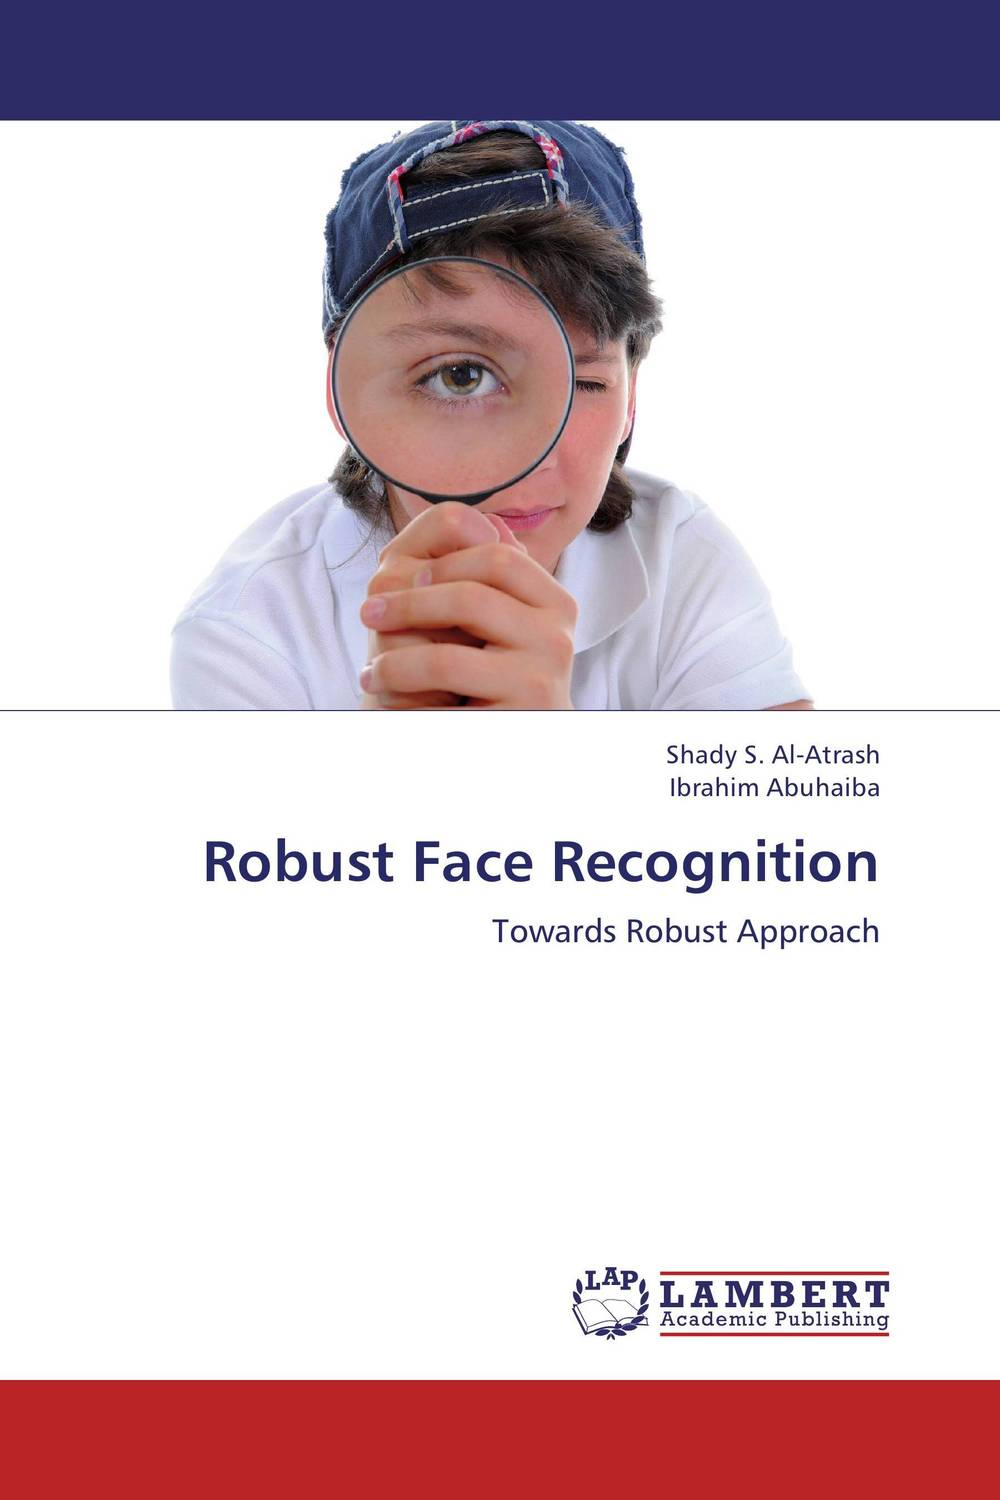 все цены на Robust Face Recognition онлайн